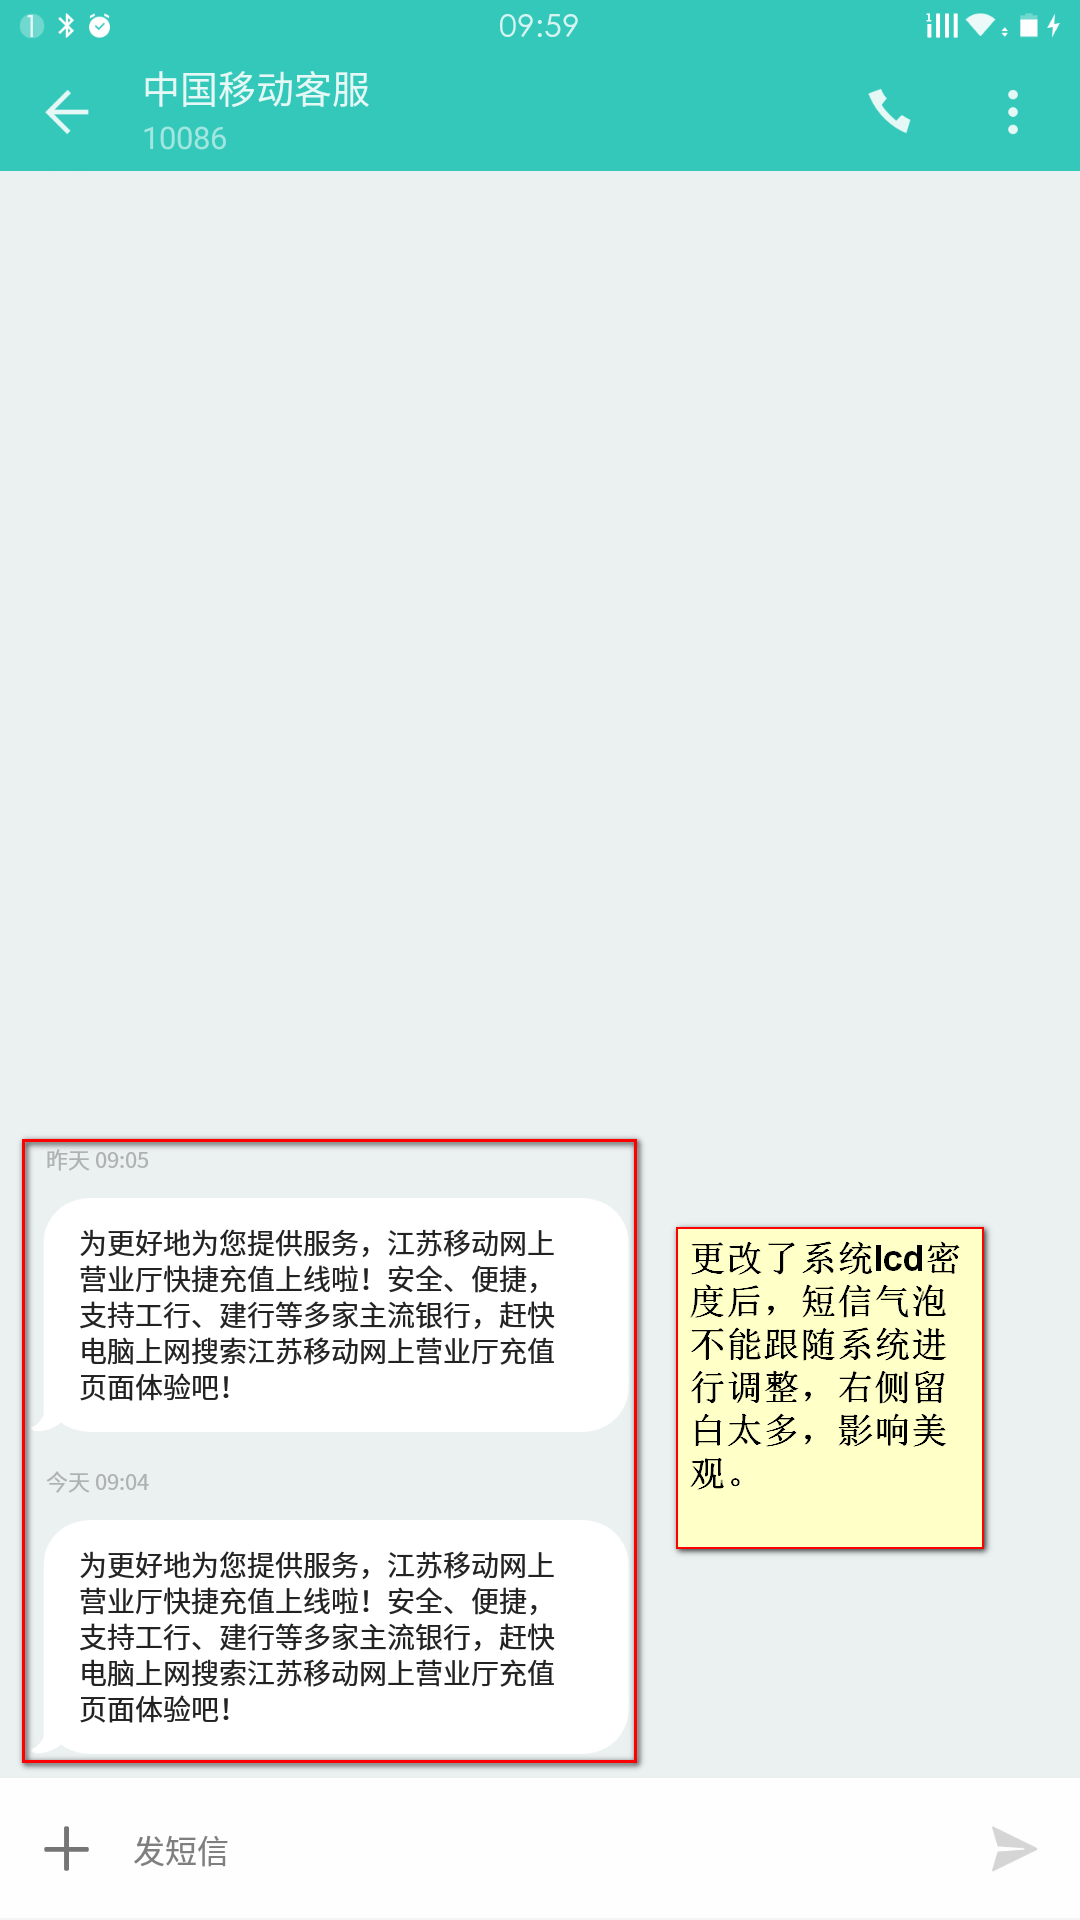 Screenshot_2015-08-26-09-59-43.png